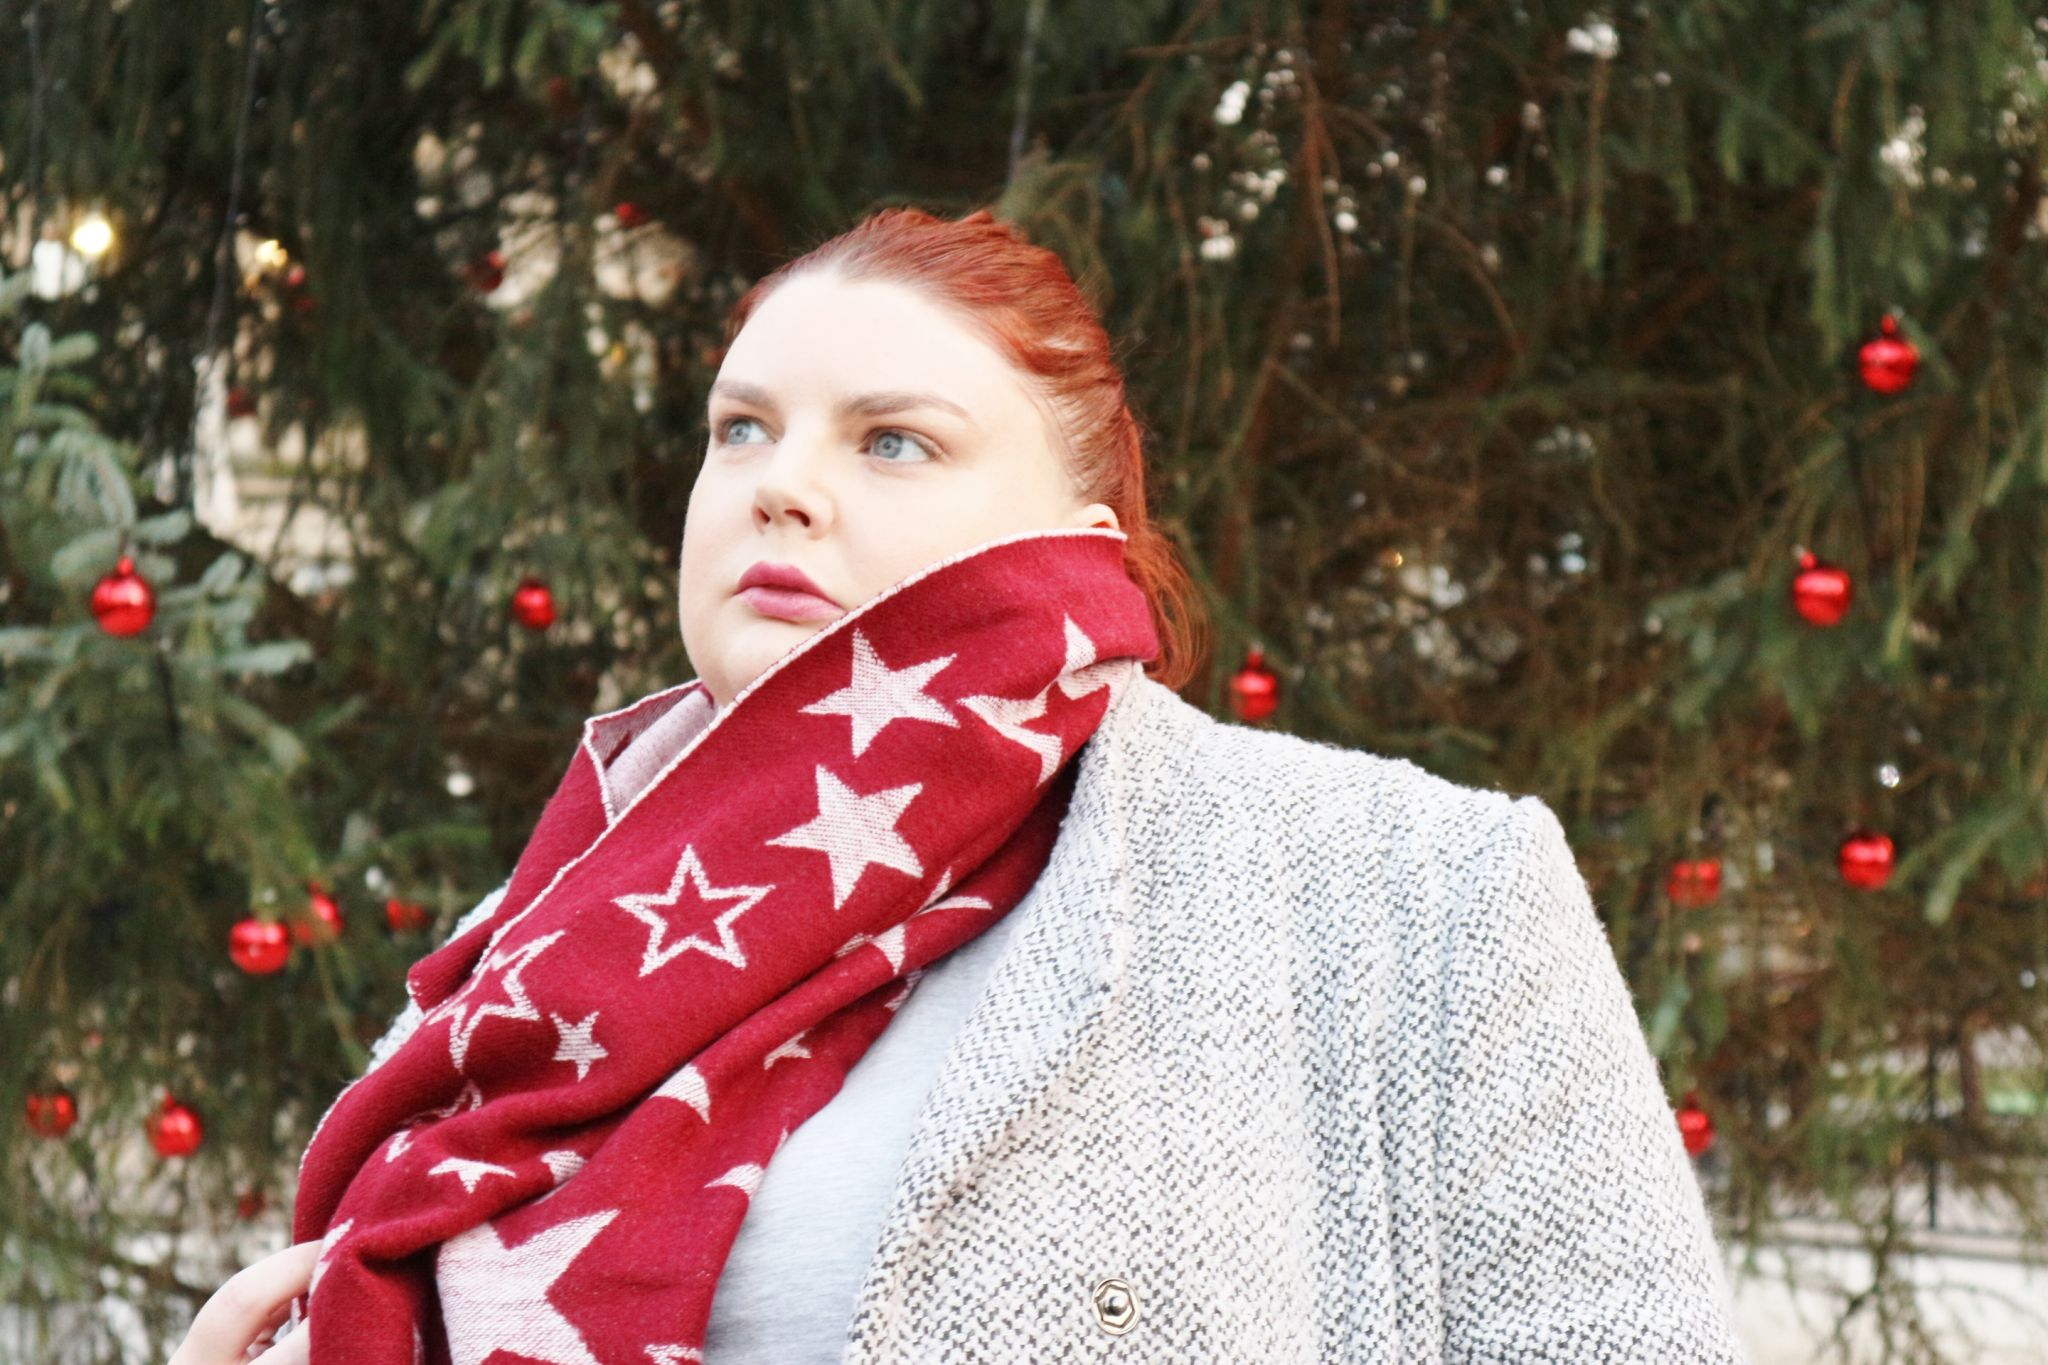 fat face star jacquard scarf